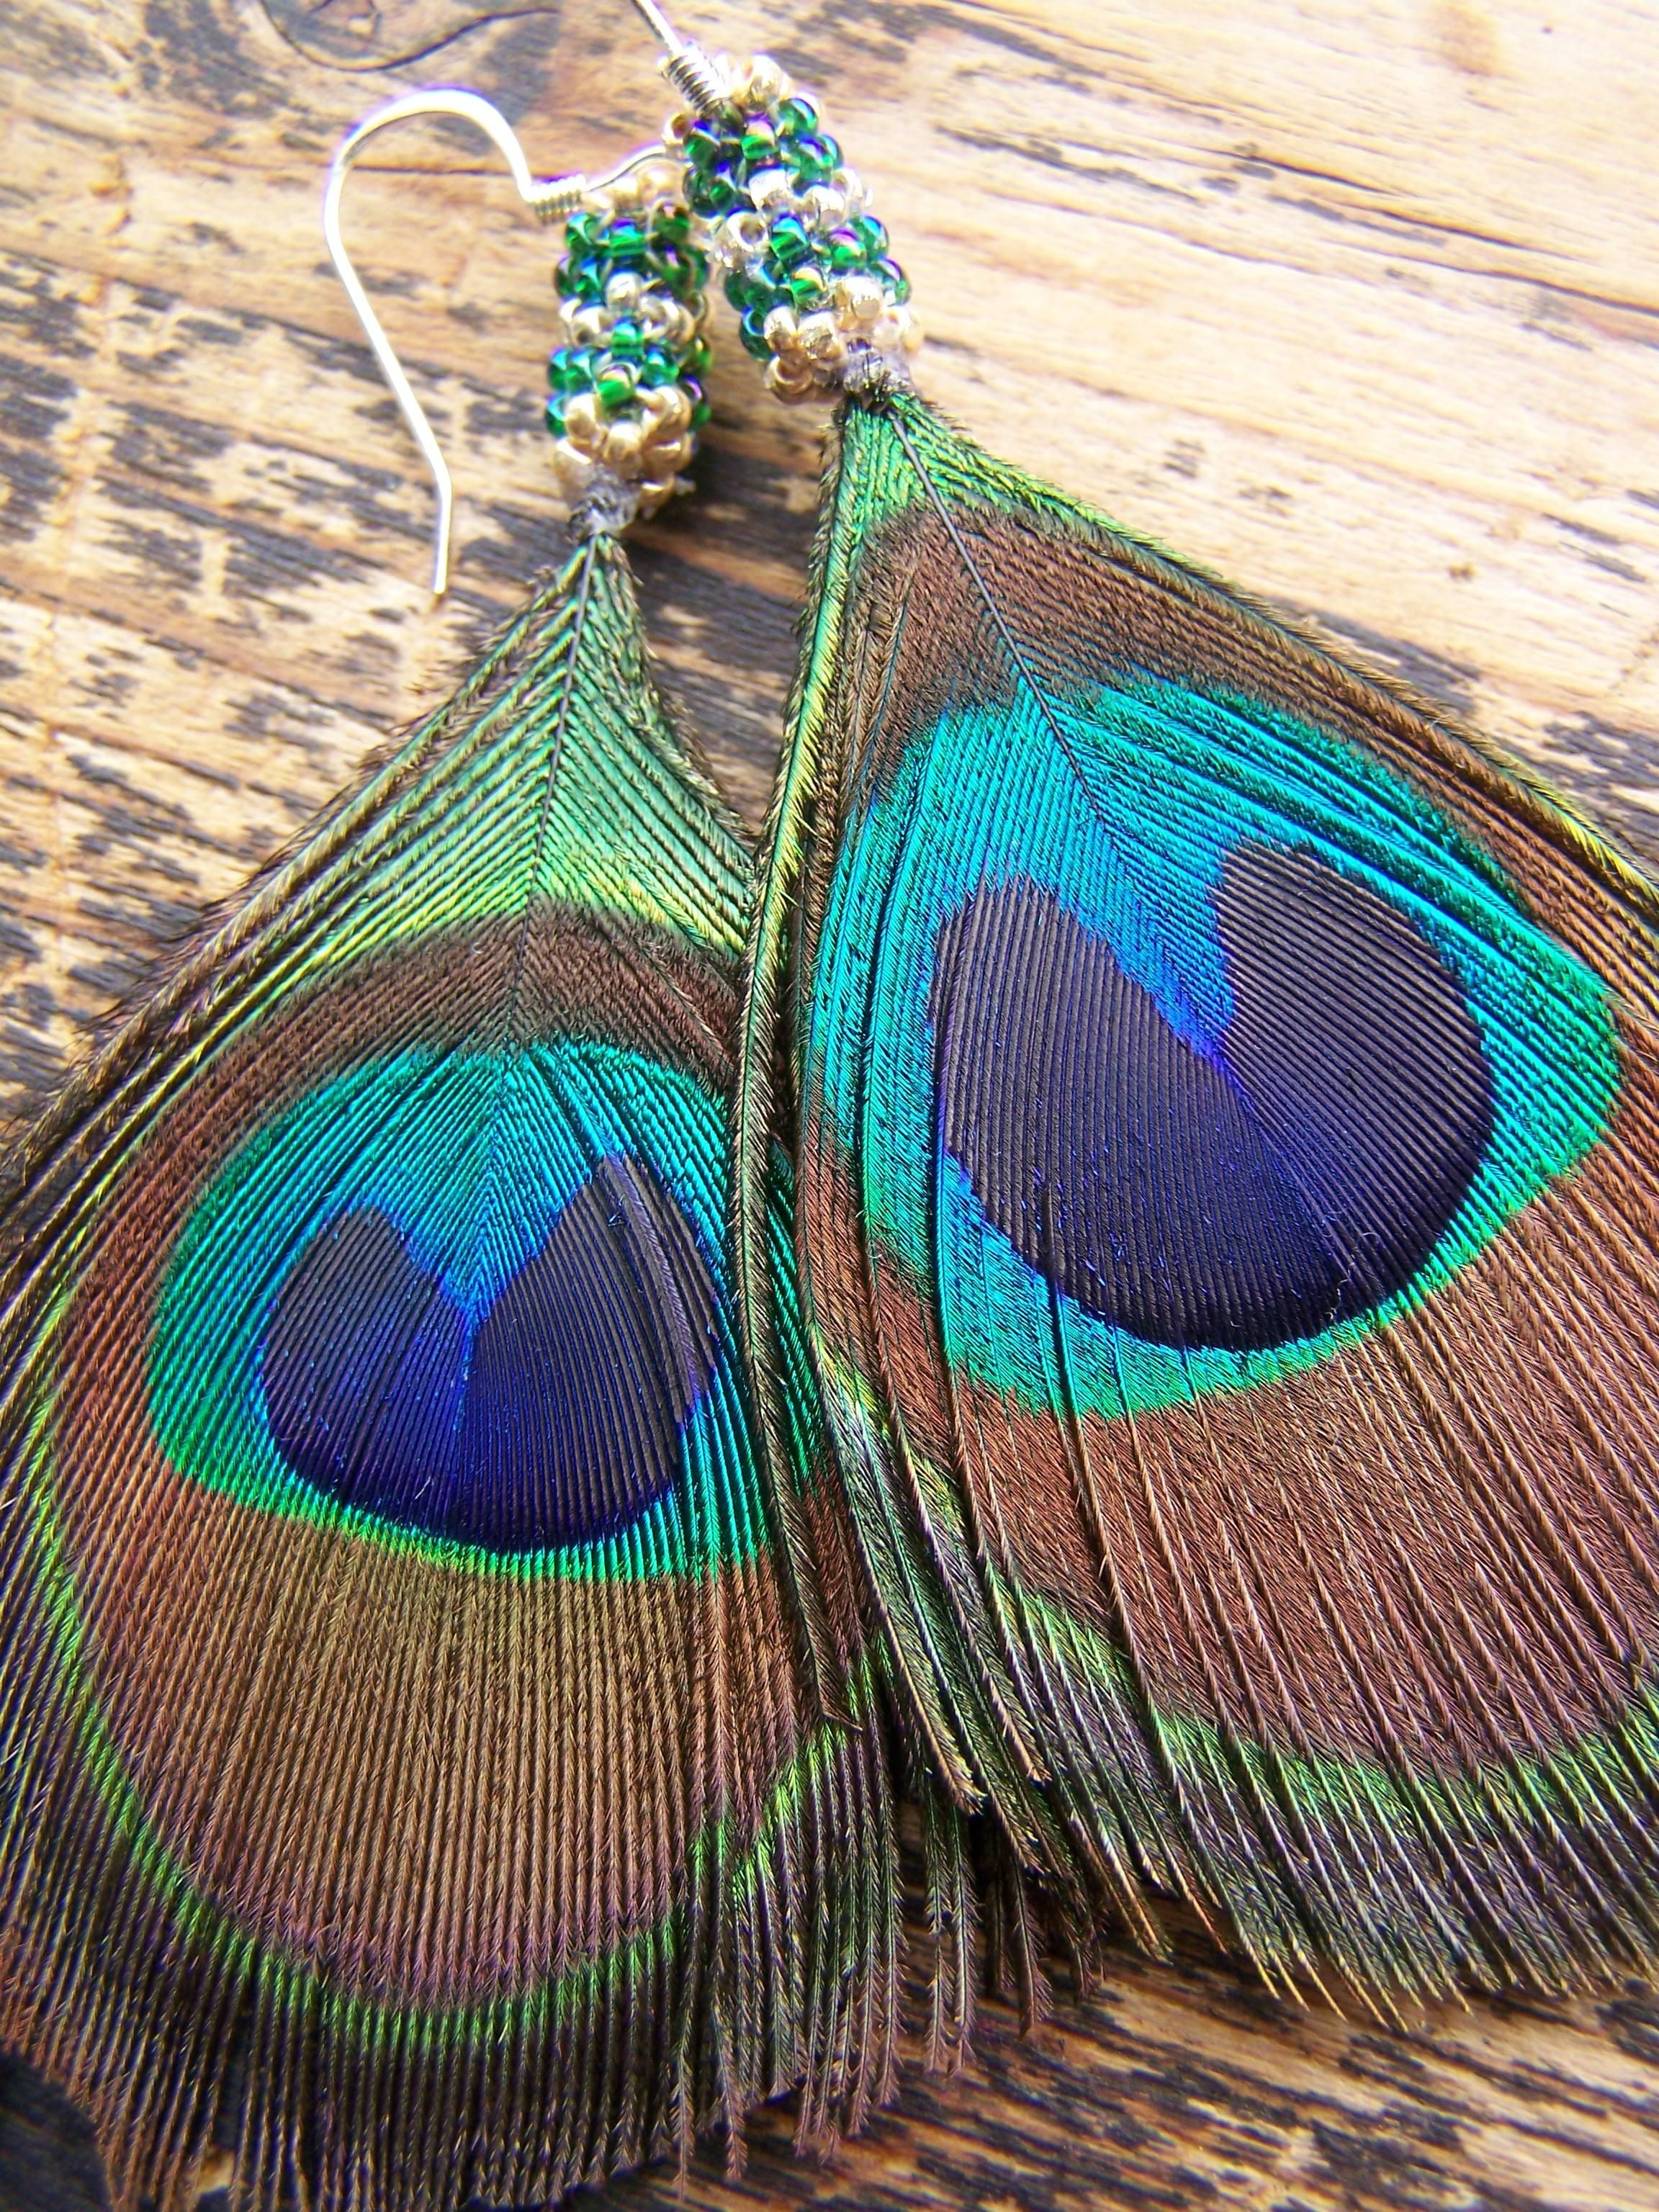 Gorgeous idea for peacock feathers.